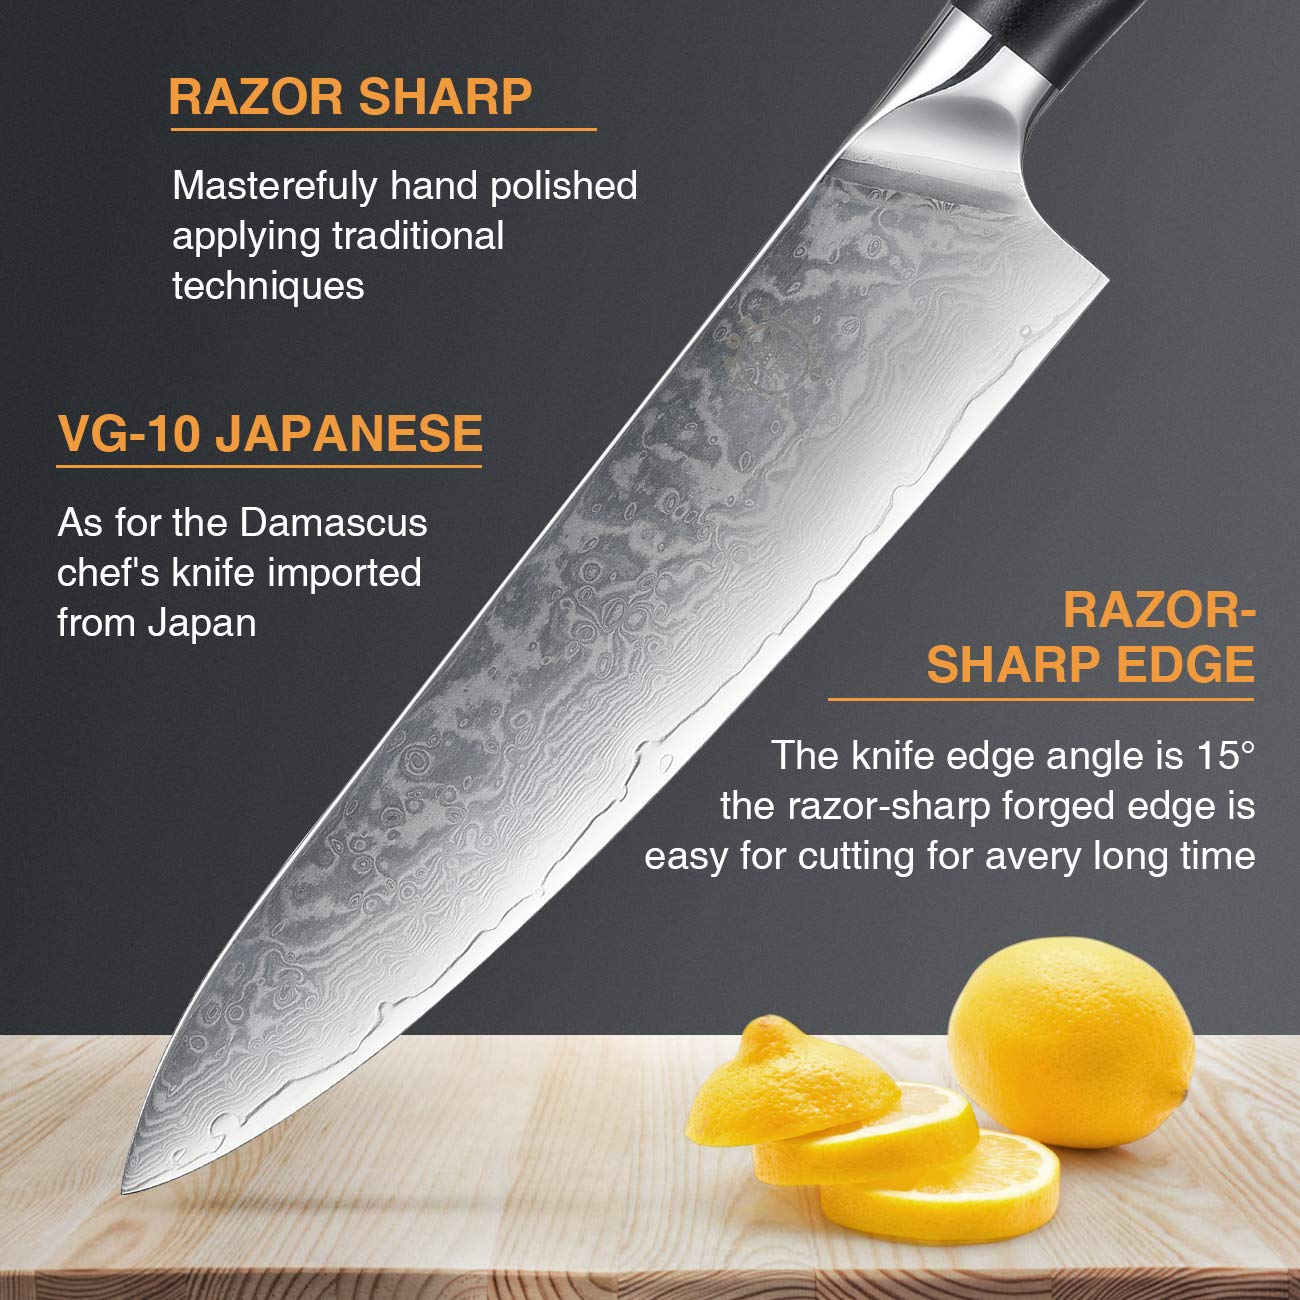 Damascus Chef Knife, Inofia 8-Inch Pro Kitchen knives Japanese 67 Layer VG-10 High Carbon Stainless Steel with Ergonomic Handle and Wooden Block holder by Inofia US (Image #9)